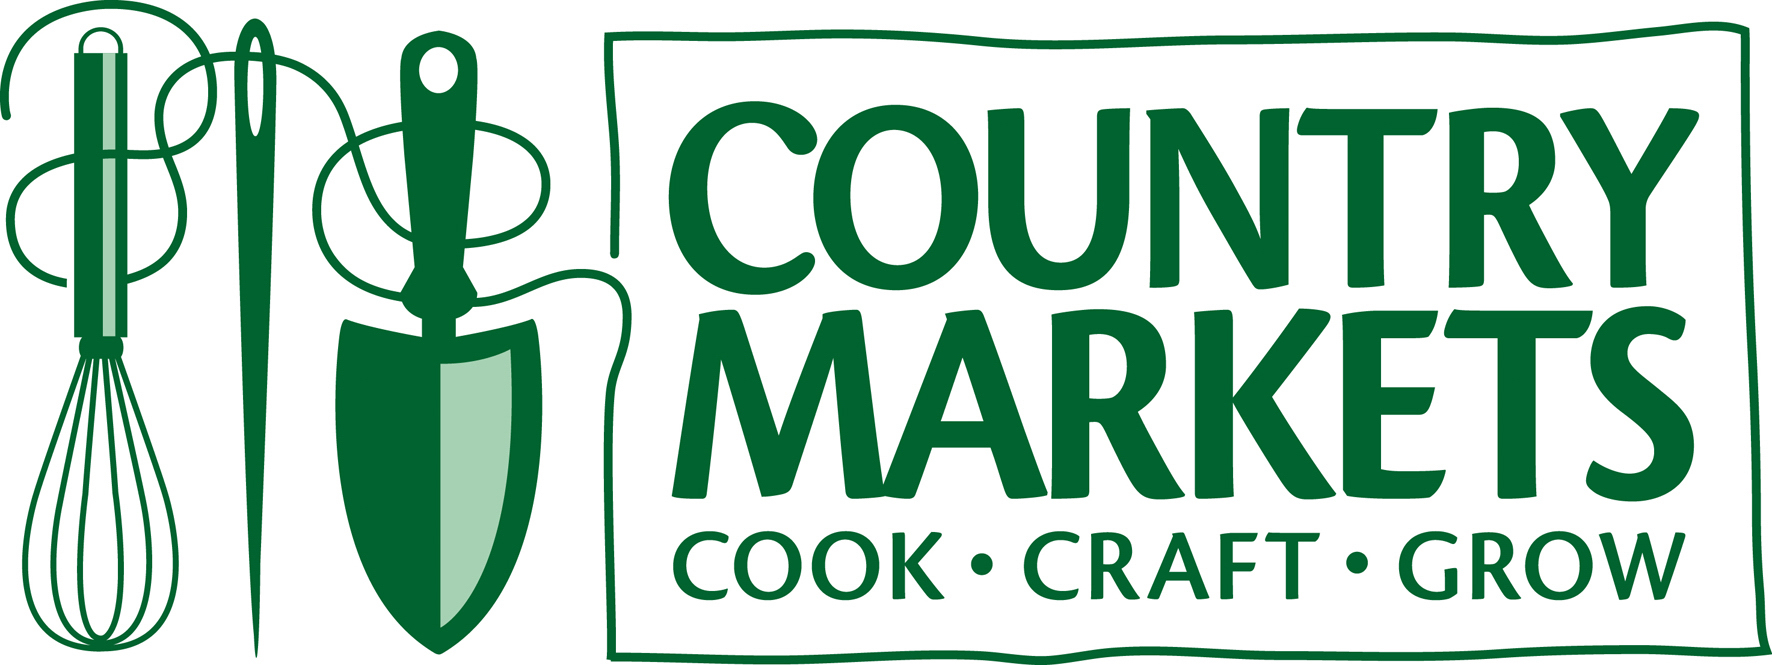 Christmas Country Market